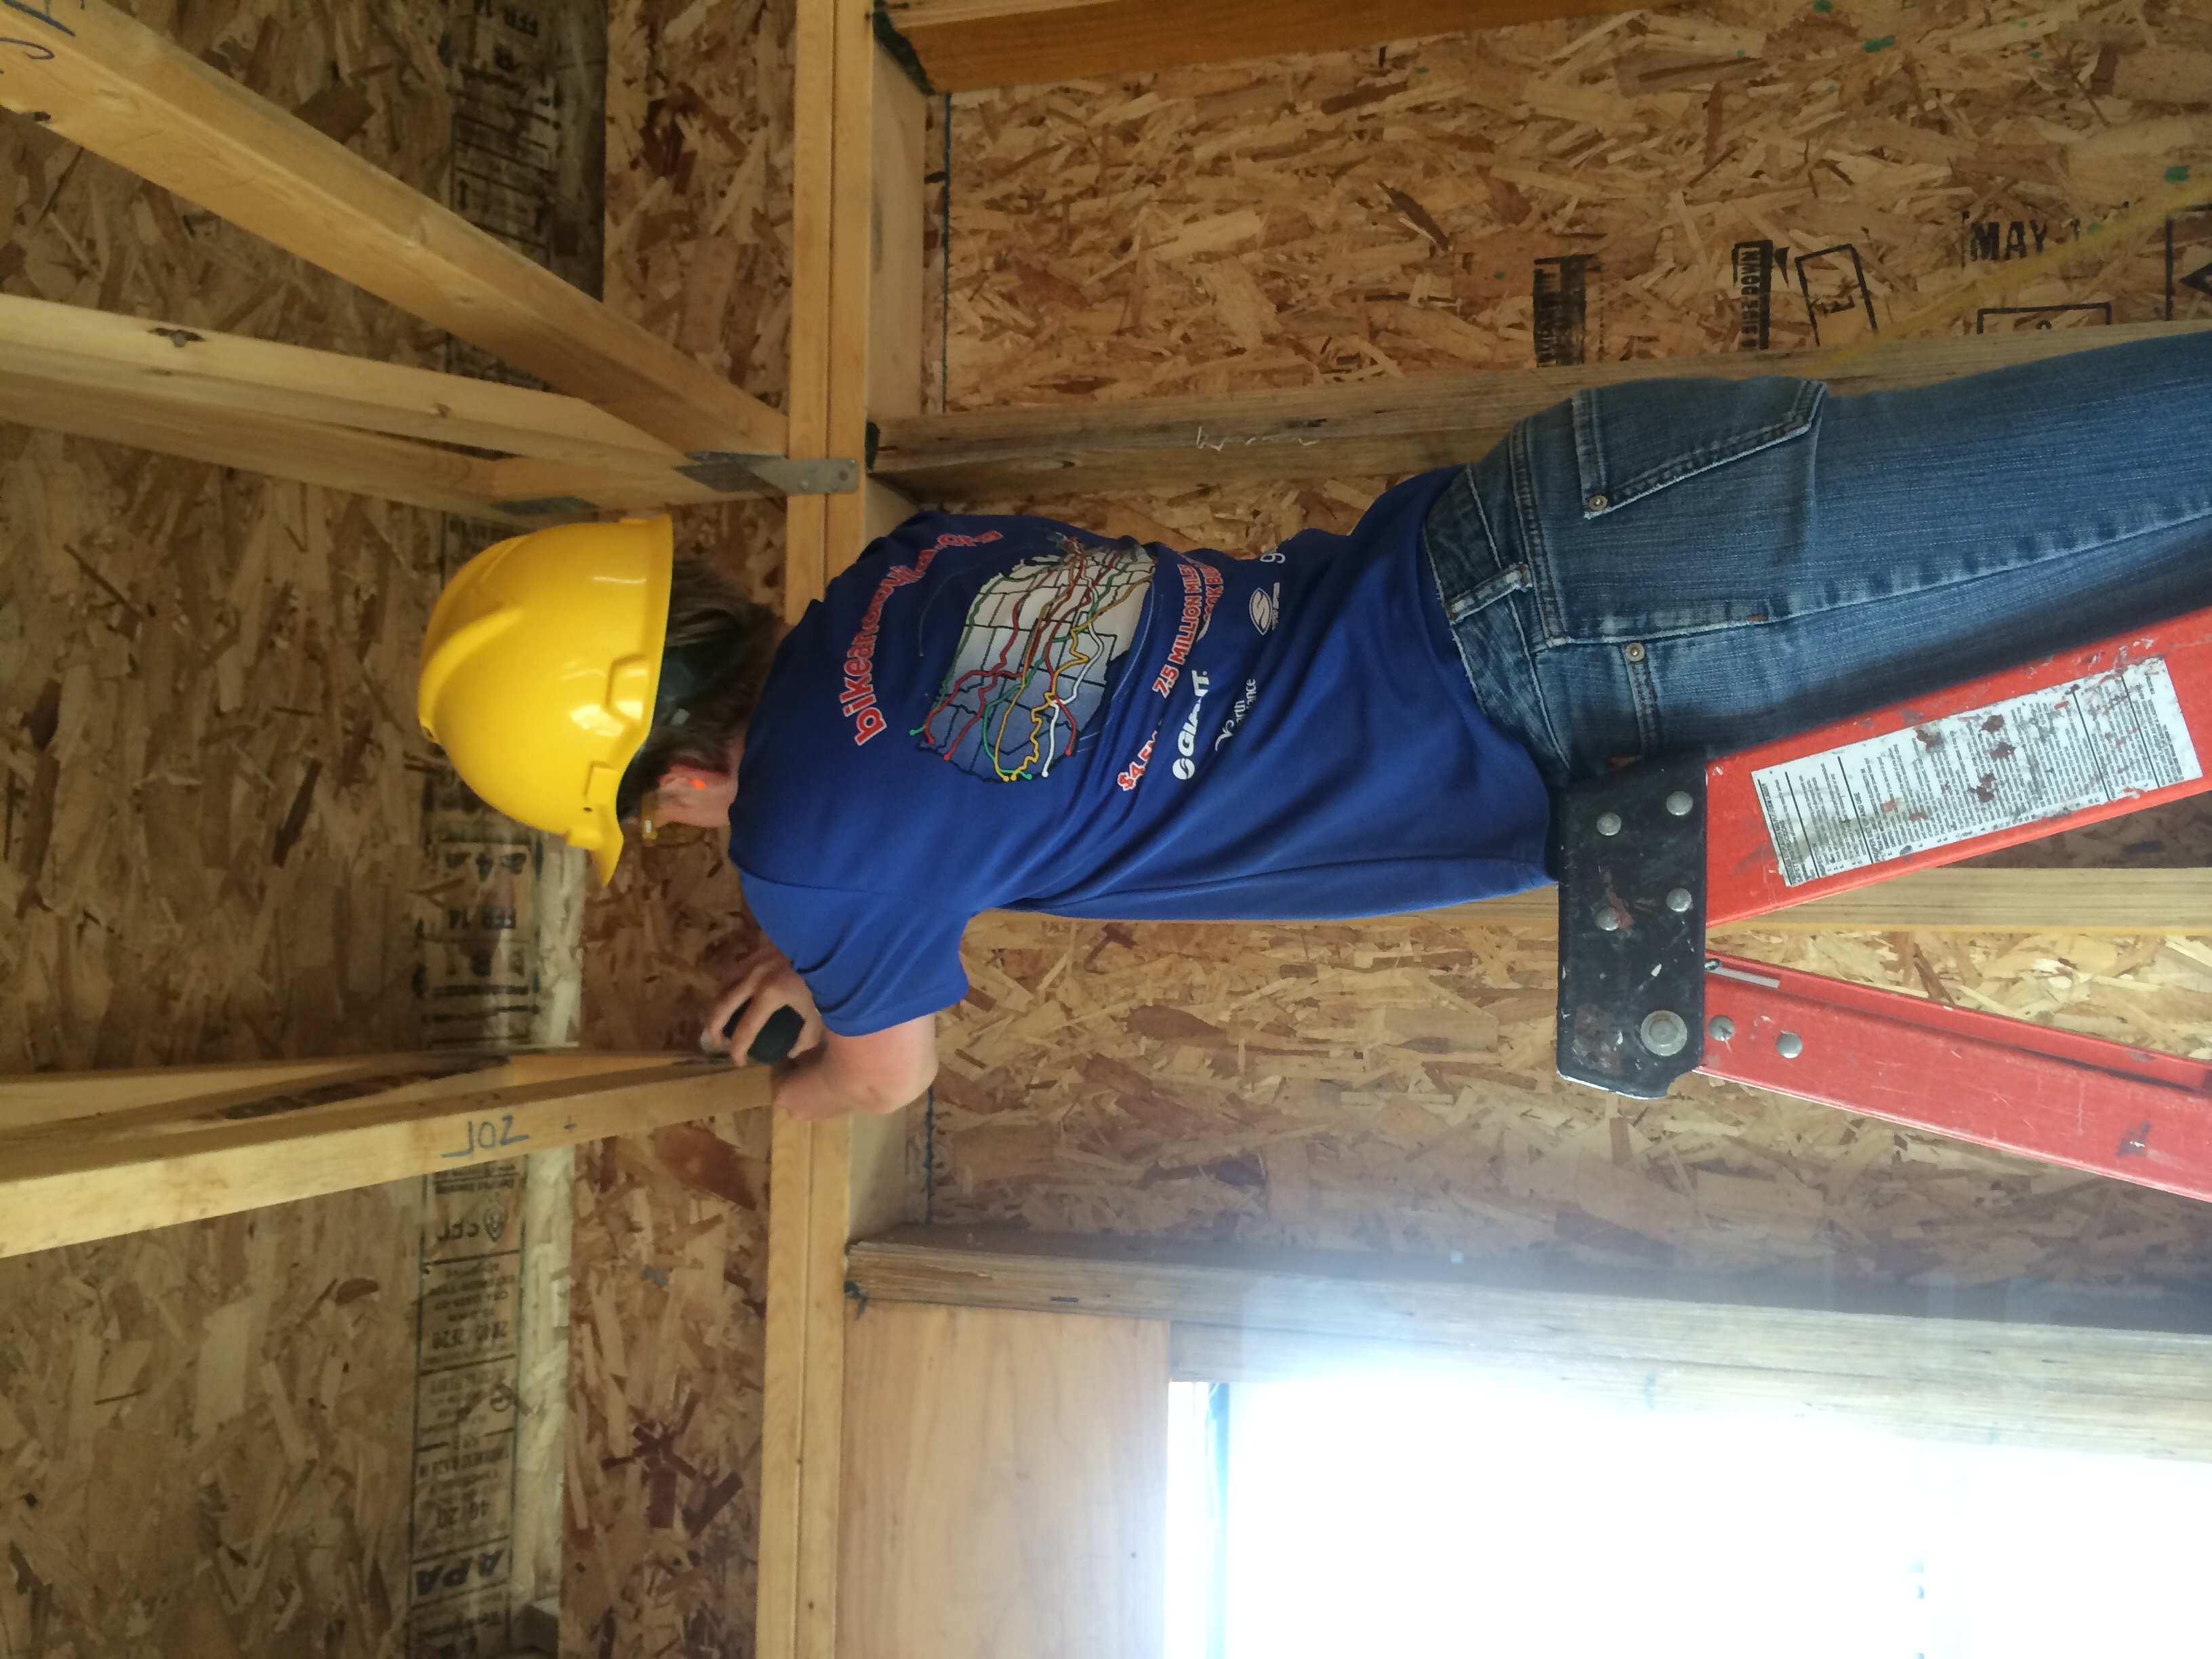 Meg and I were installing hurricane ties, which secure the roof to the walls in high winds.